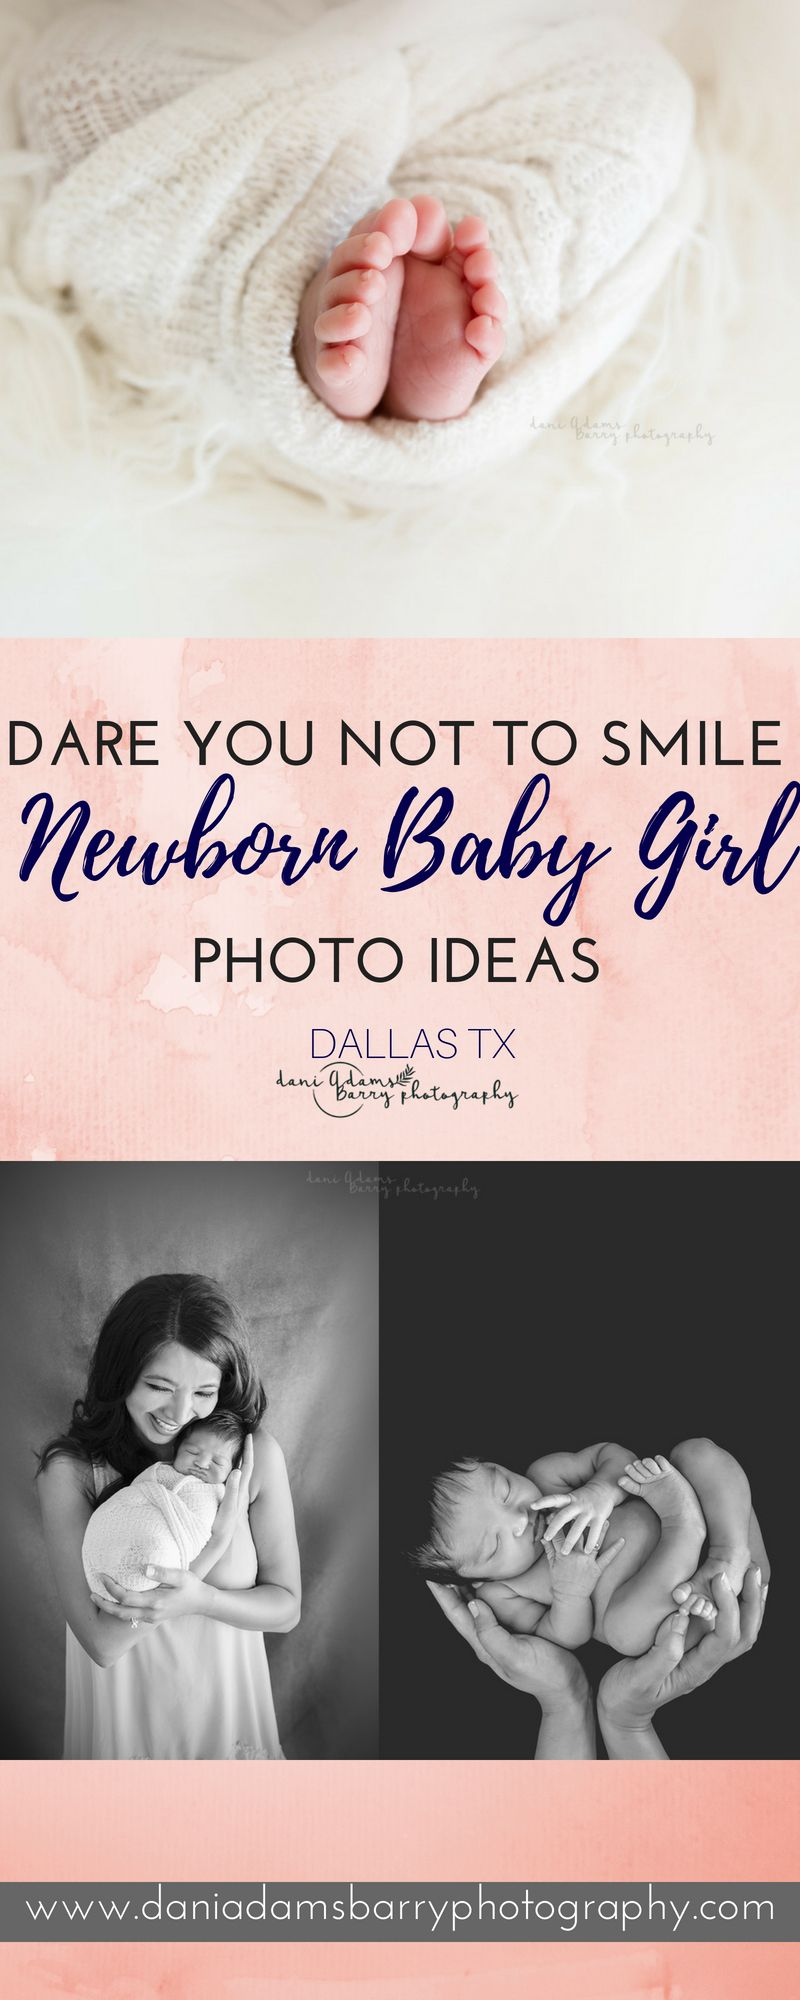 Newborn baby girl photos photo ideas dallas tx newborn photography dani adams barry pin for inspiration